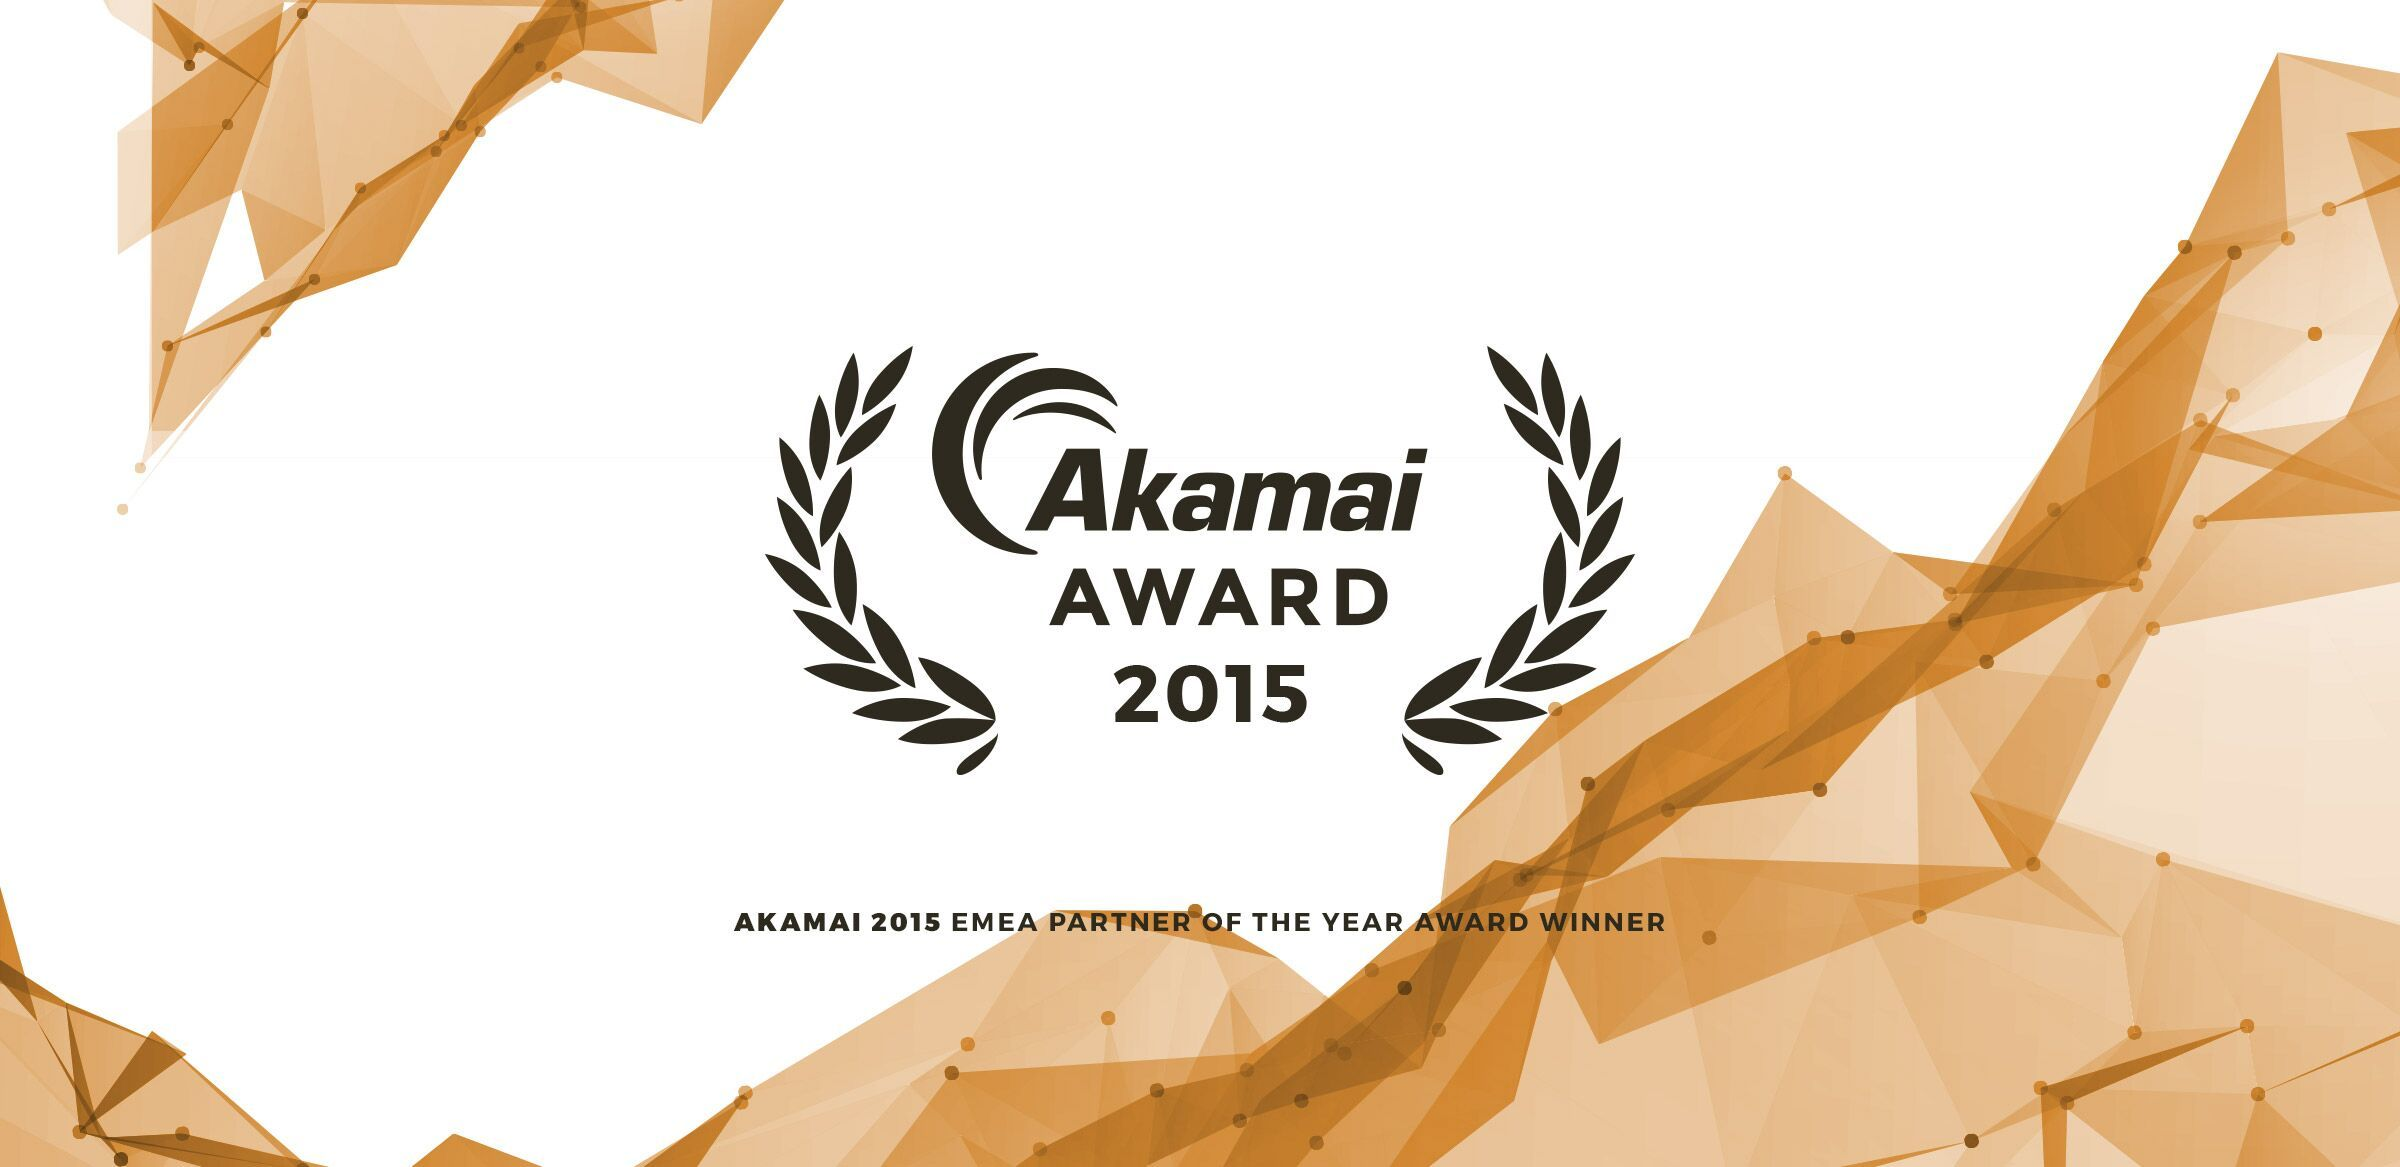 Akamai 2015 EMEA Partner of the Year Award Winner